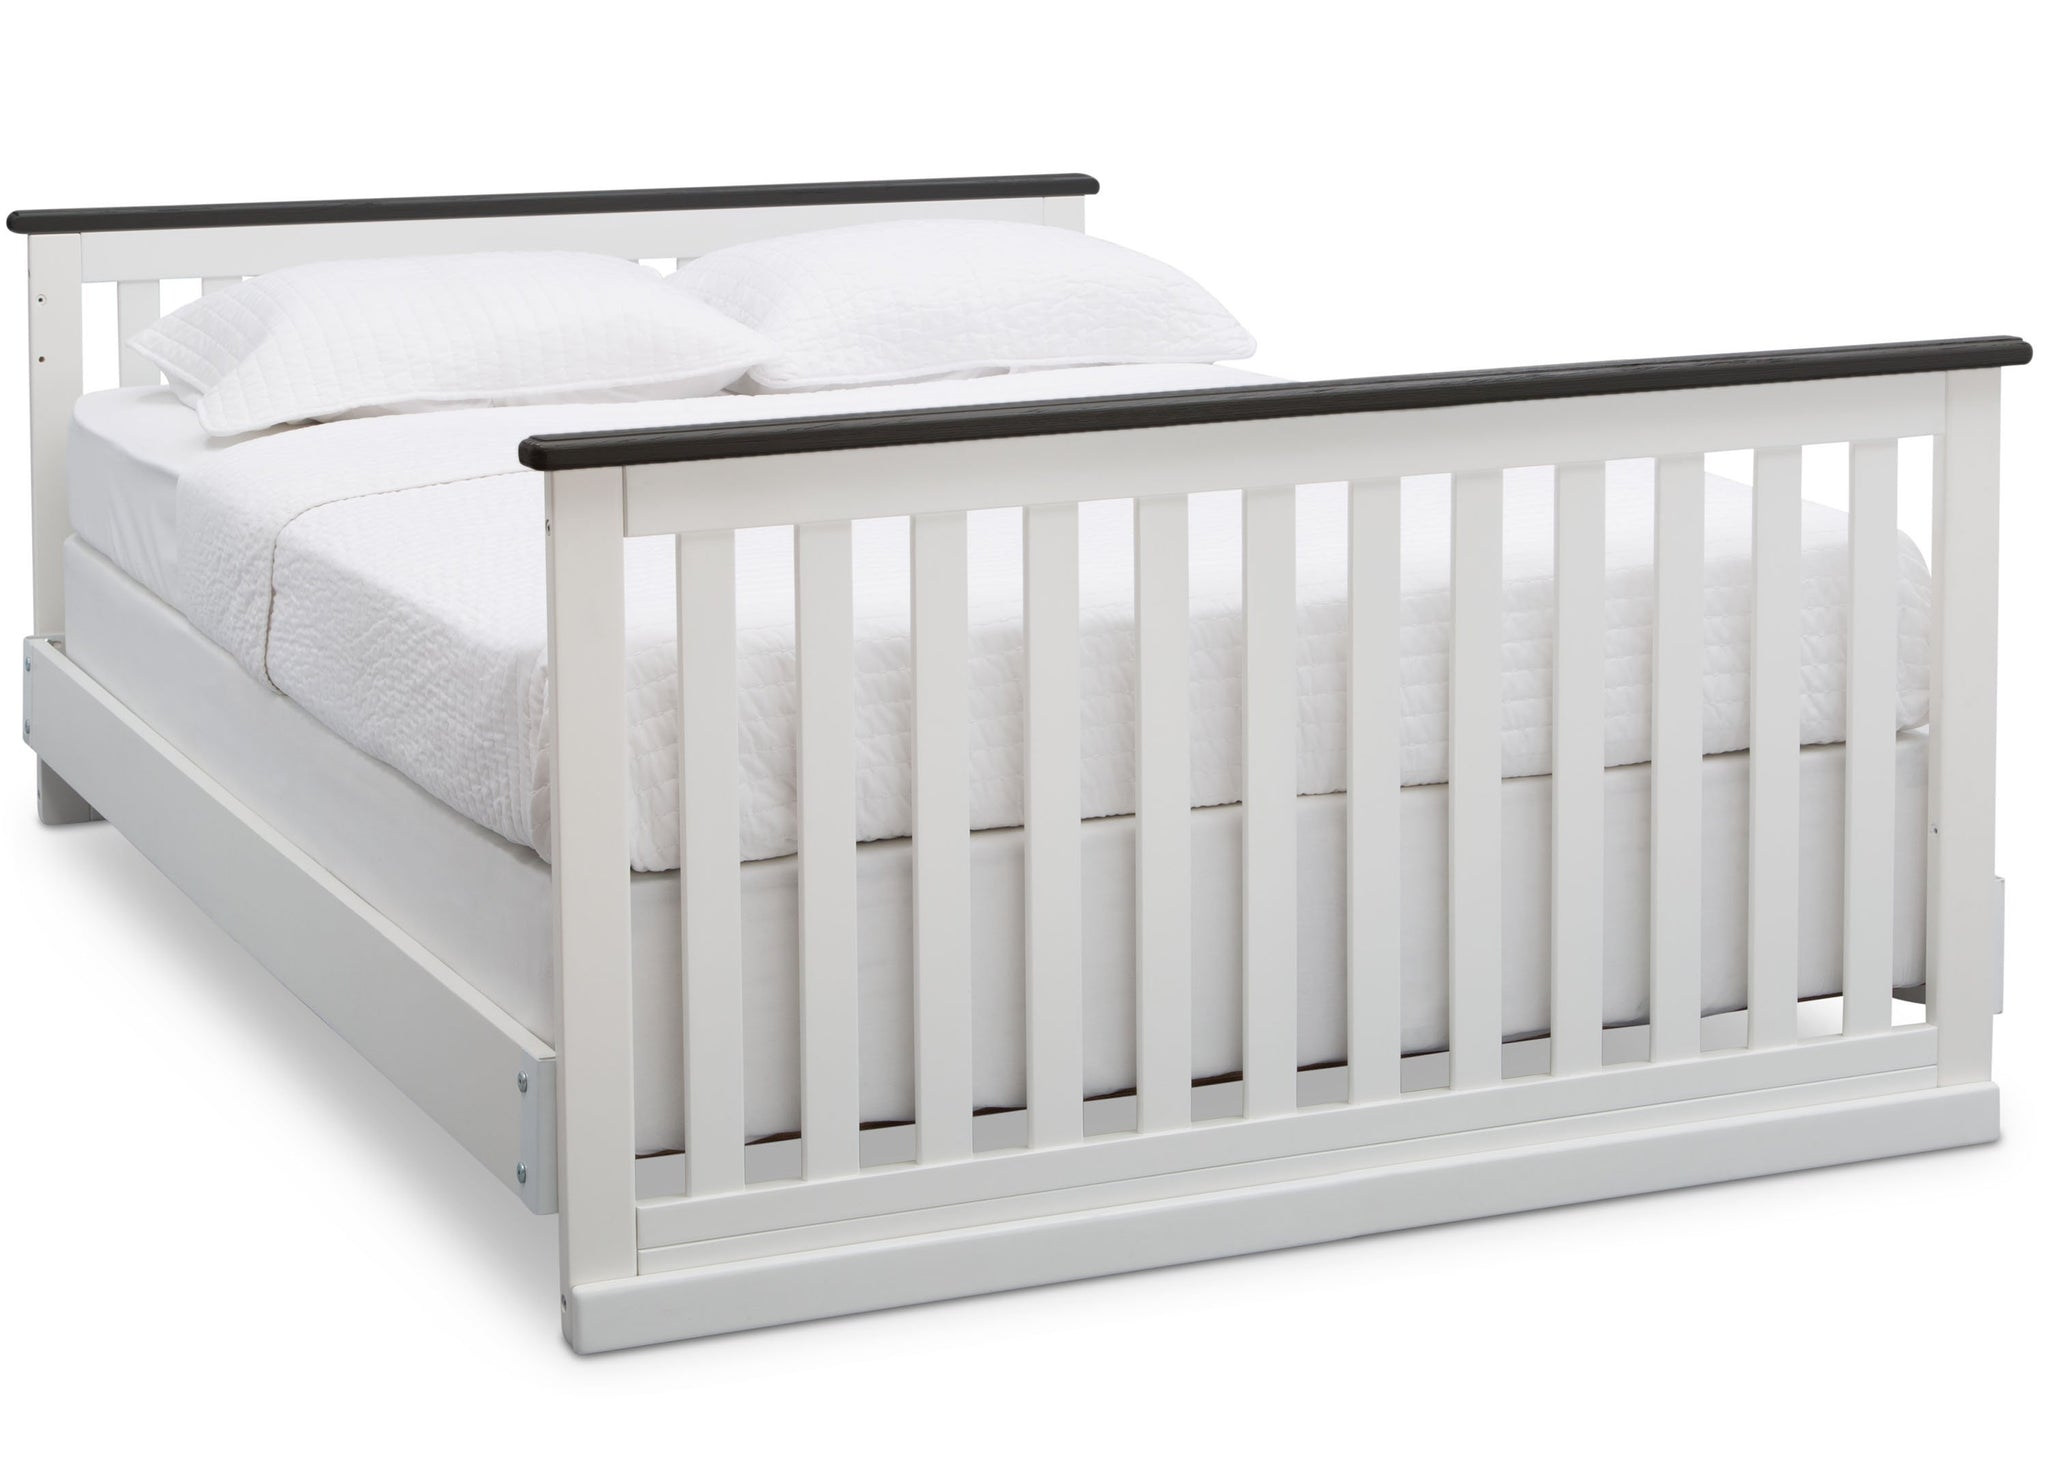 Delta Children Bianca with Rustic Ebony (135) Providence Classic 4-in-1 Convertible Crib (548650), Full Size Bed, a6a